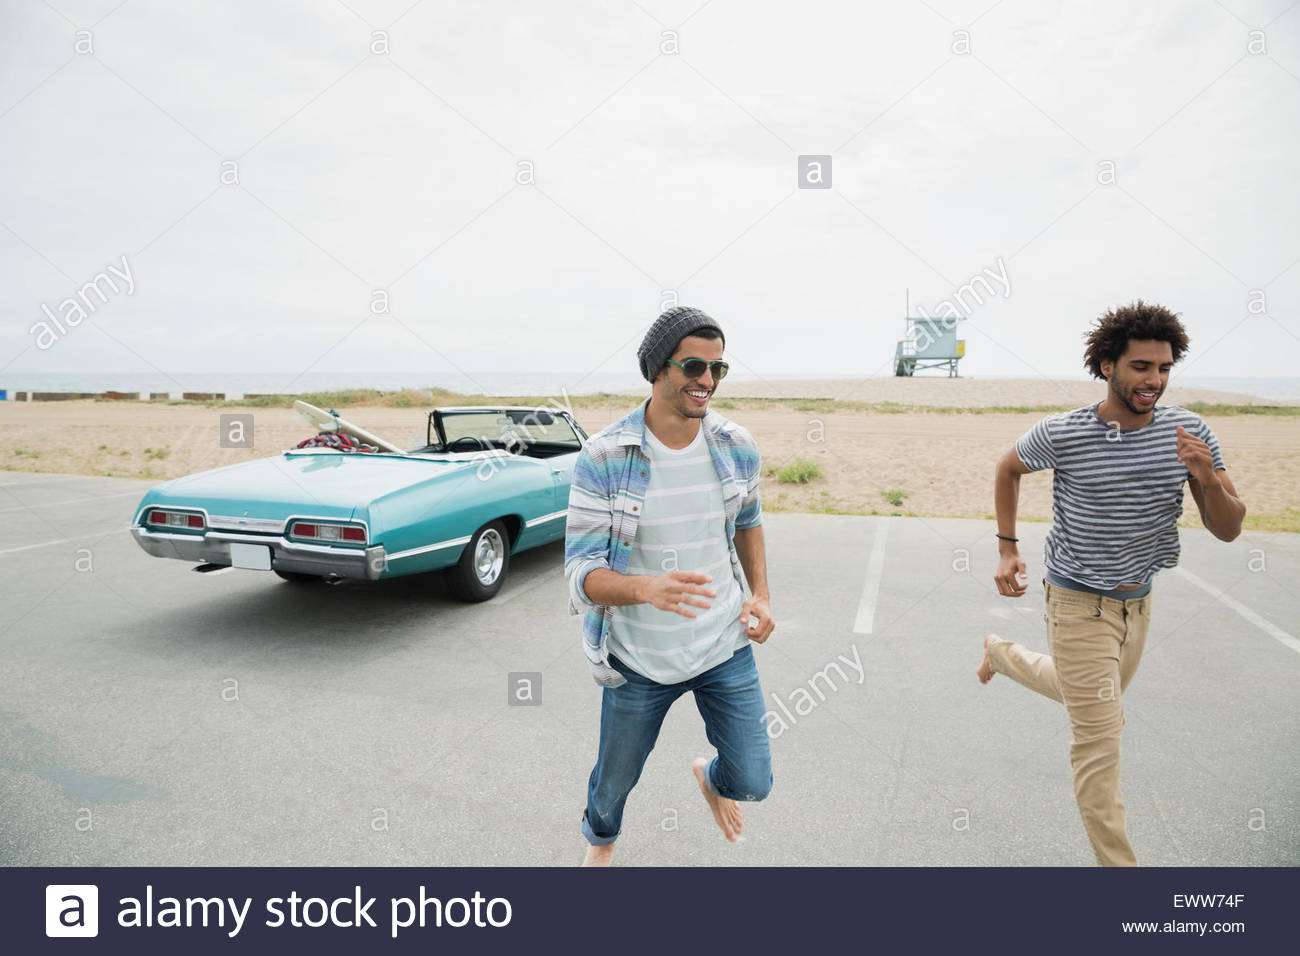 Friends running from beach and convertible parking lot - Stock Image